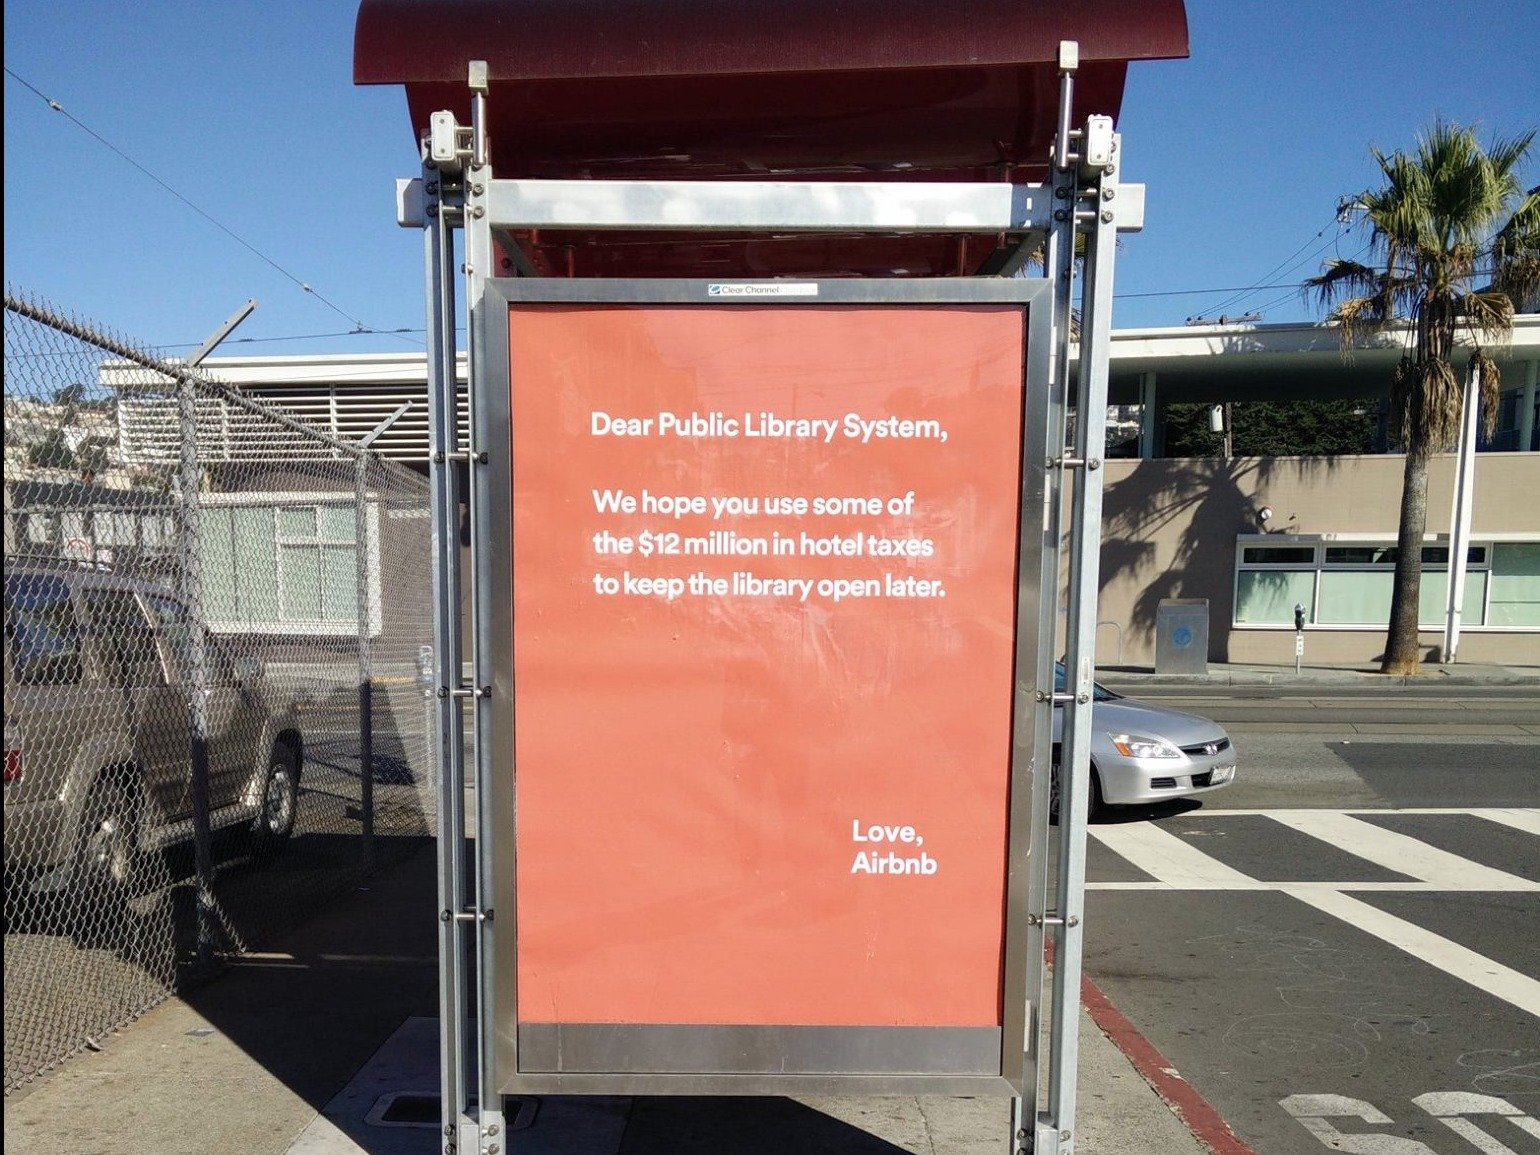 Airbnb Apologizes For Much Criticized Ads On S F Bus Shelters